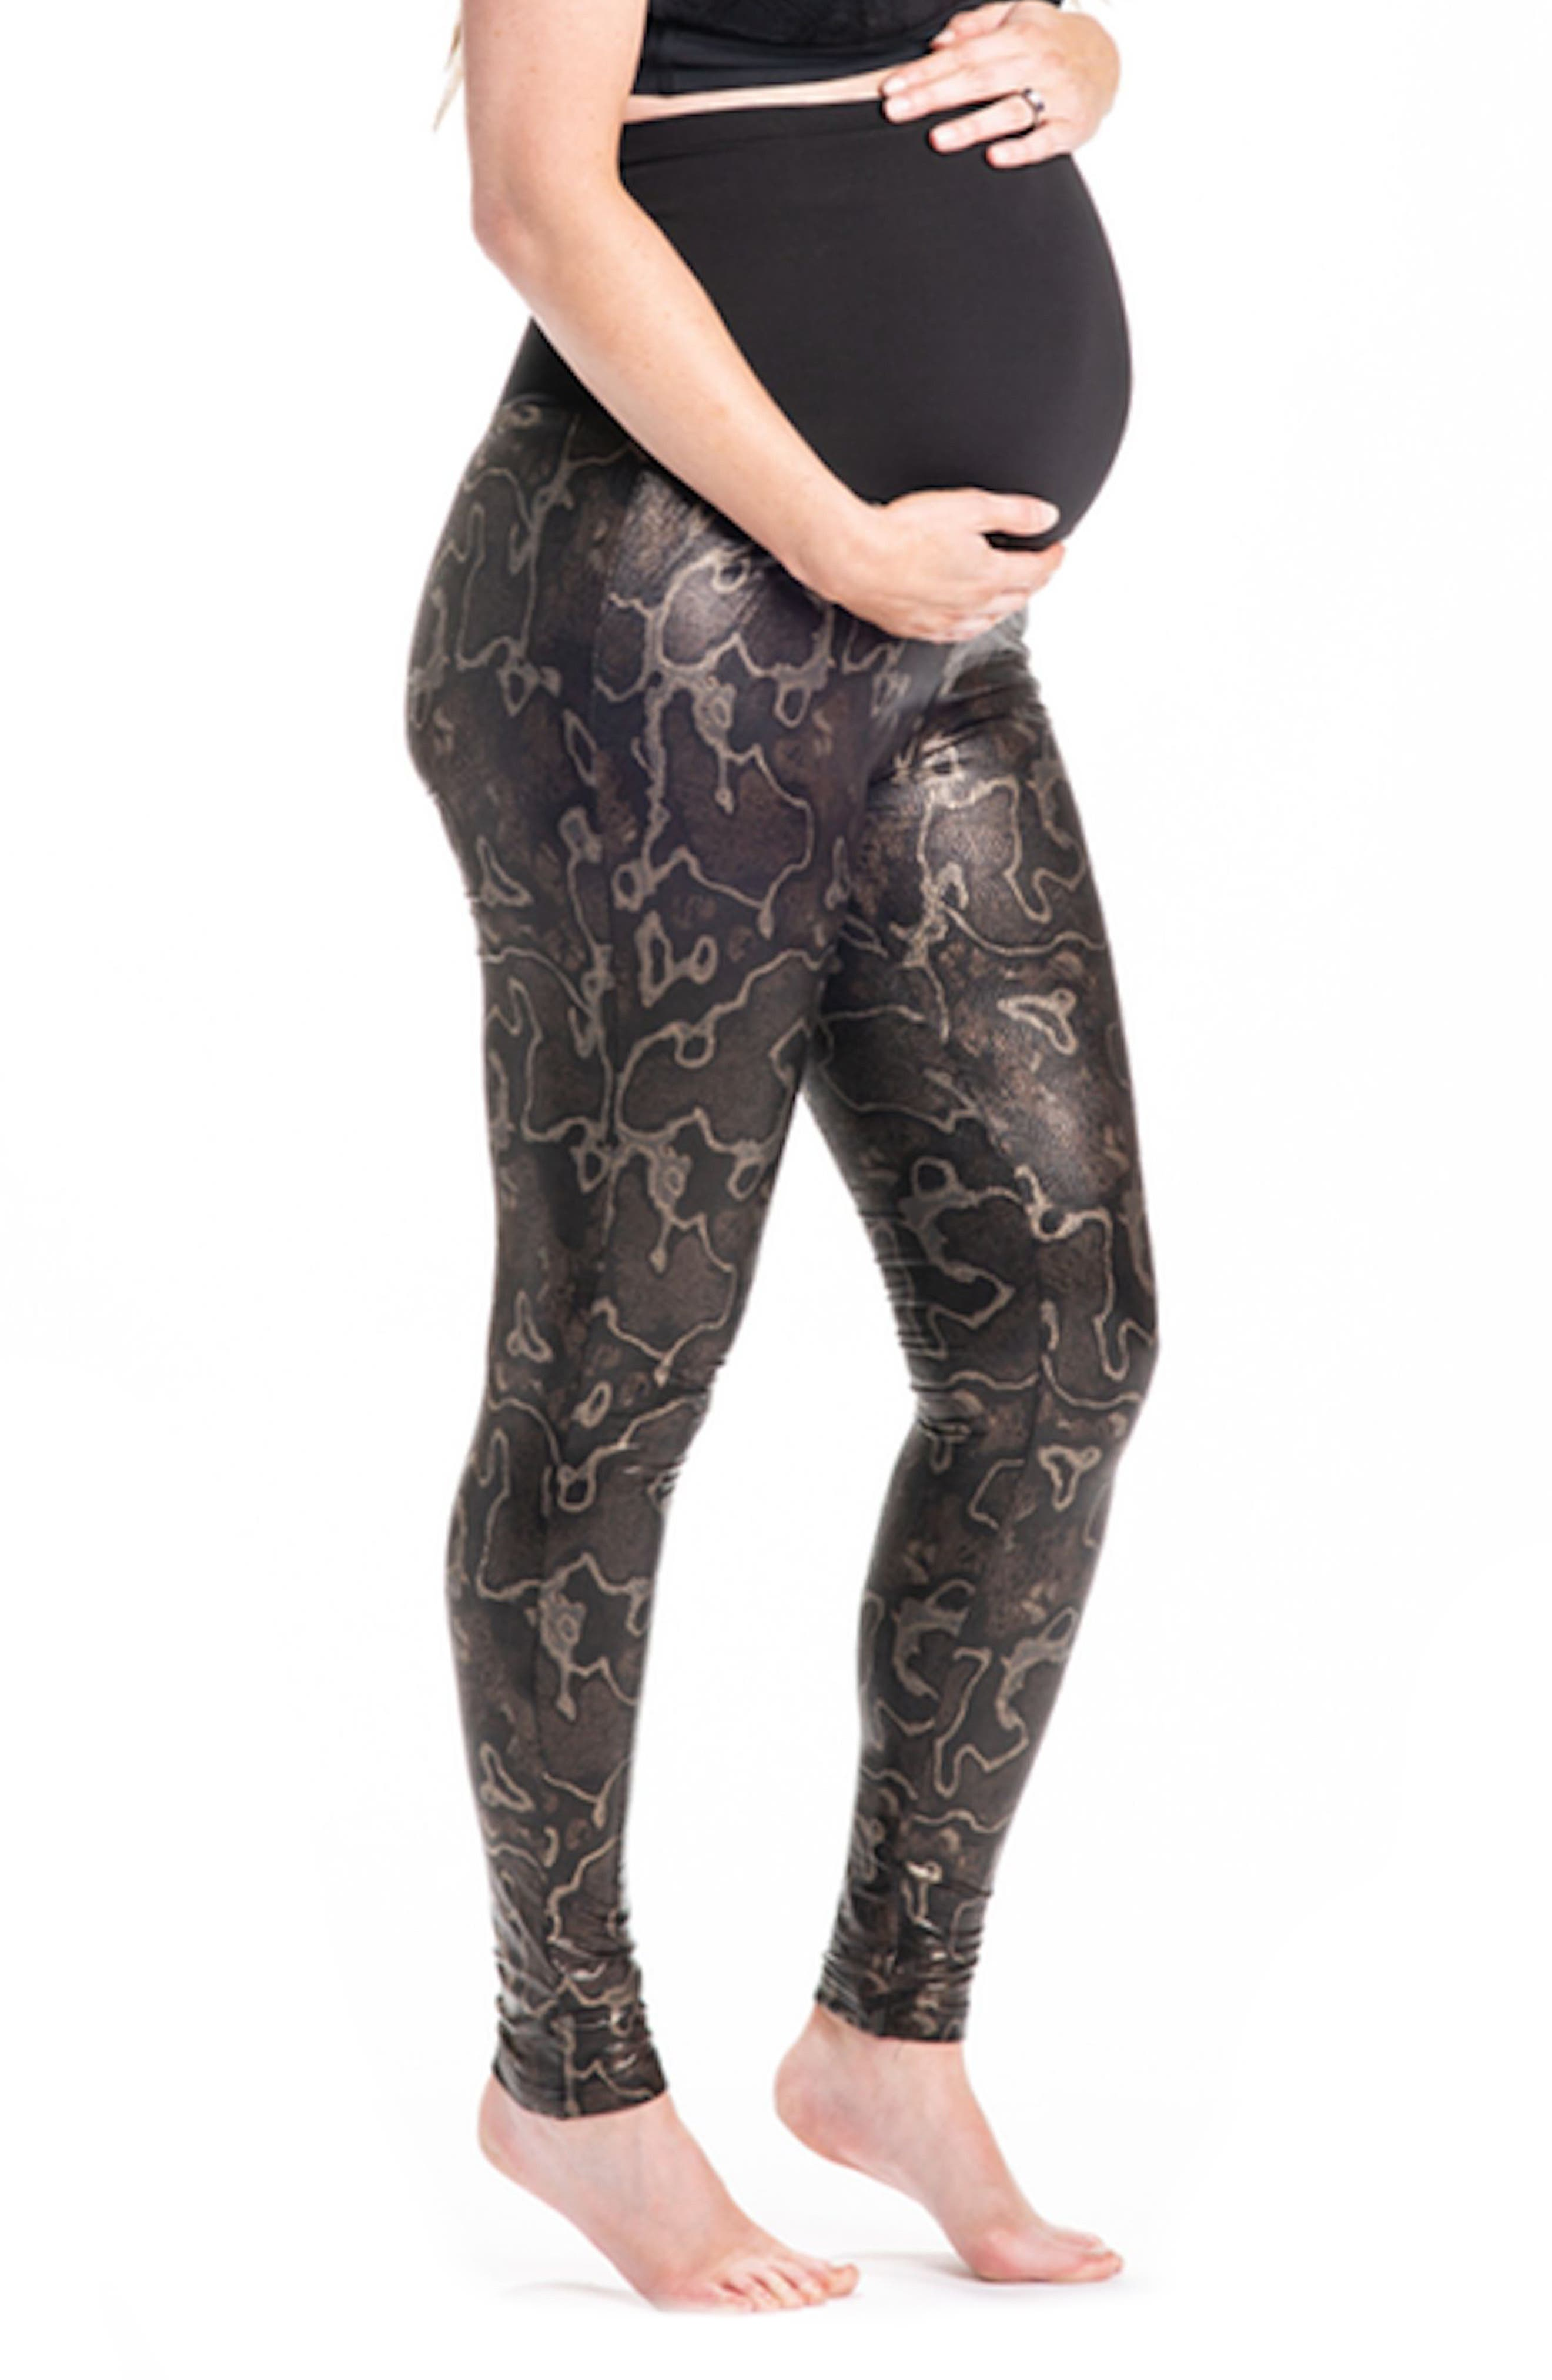 Boa Print Maternity Leggings,                             Alternate thumbnail 3, color,                             Dark Brown